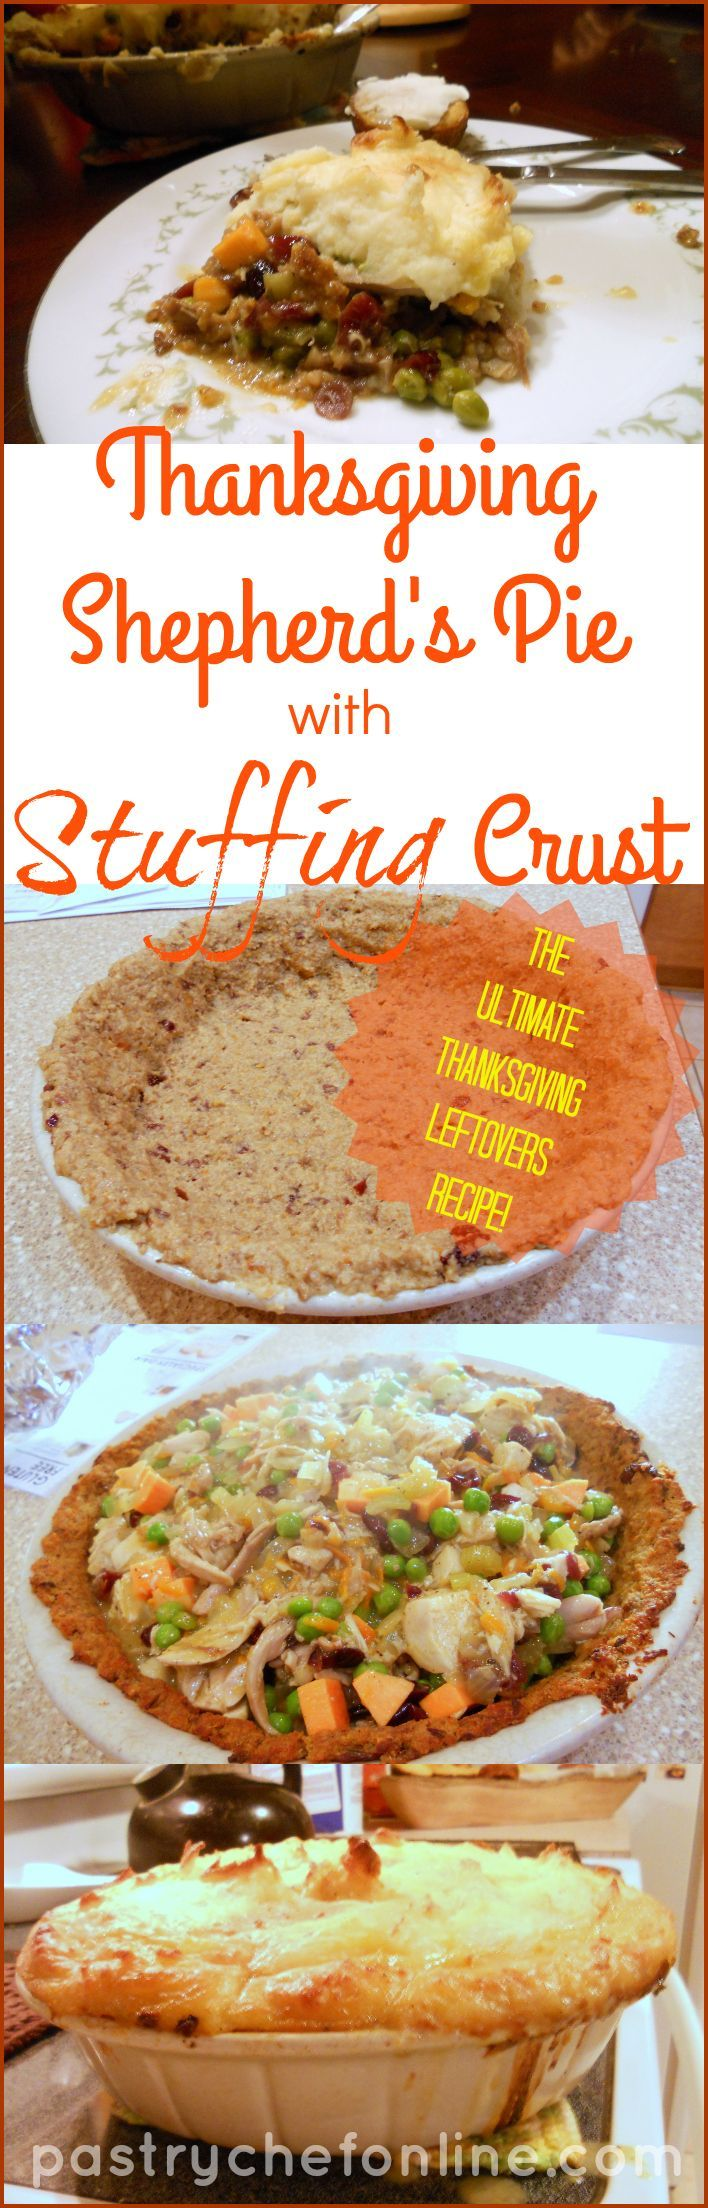 Thanksgiving Shepherd's Pie with Stuffing Crust